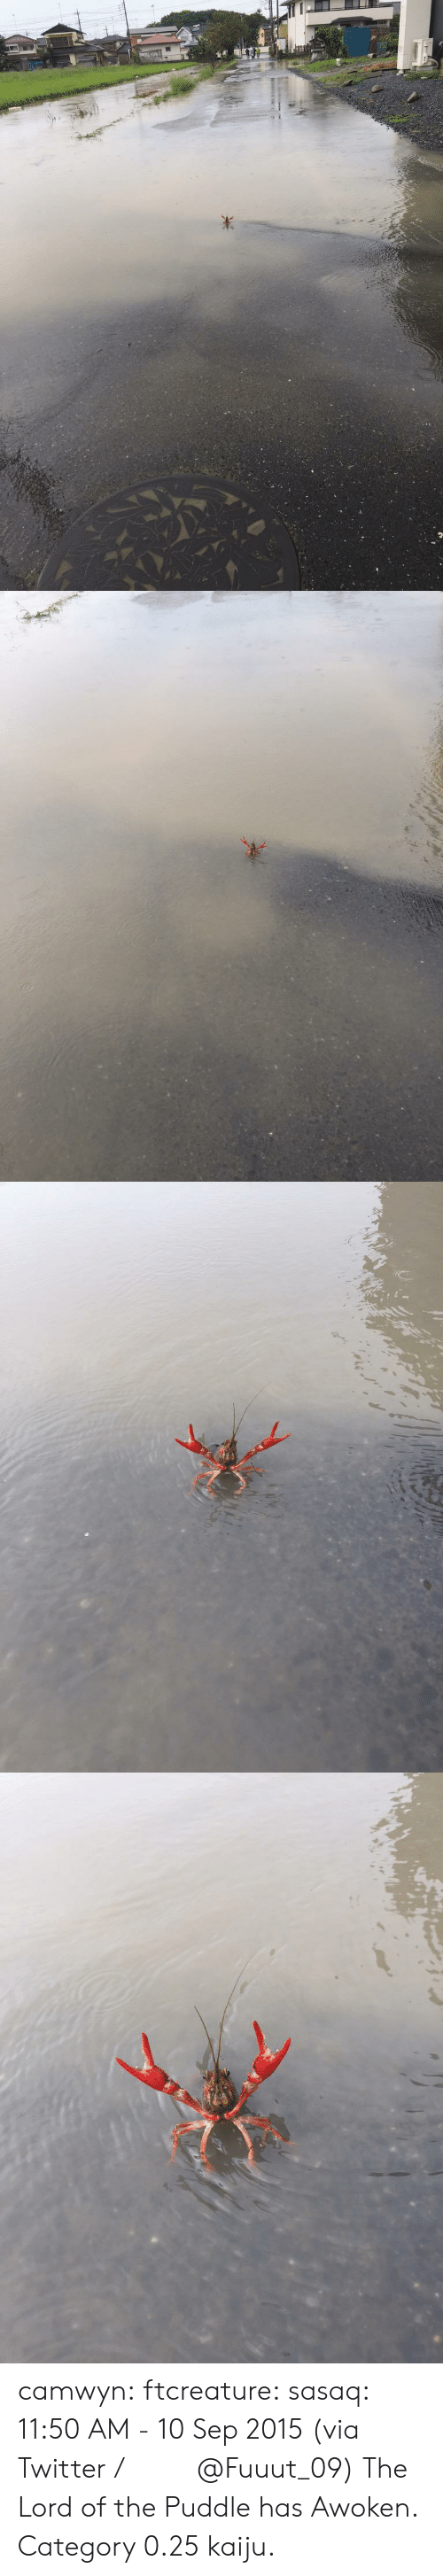 kaiju: camwyn:  ftcreature:  sasaq:  11:50 AM - 10 Sep 2015 (via Twitter / ふ み な @Fuuut_09)   The Lord of the Puddle has Awoken.  Category 0.25 kaiju.